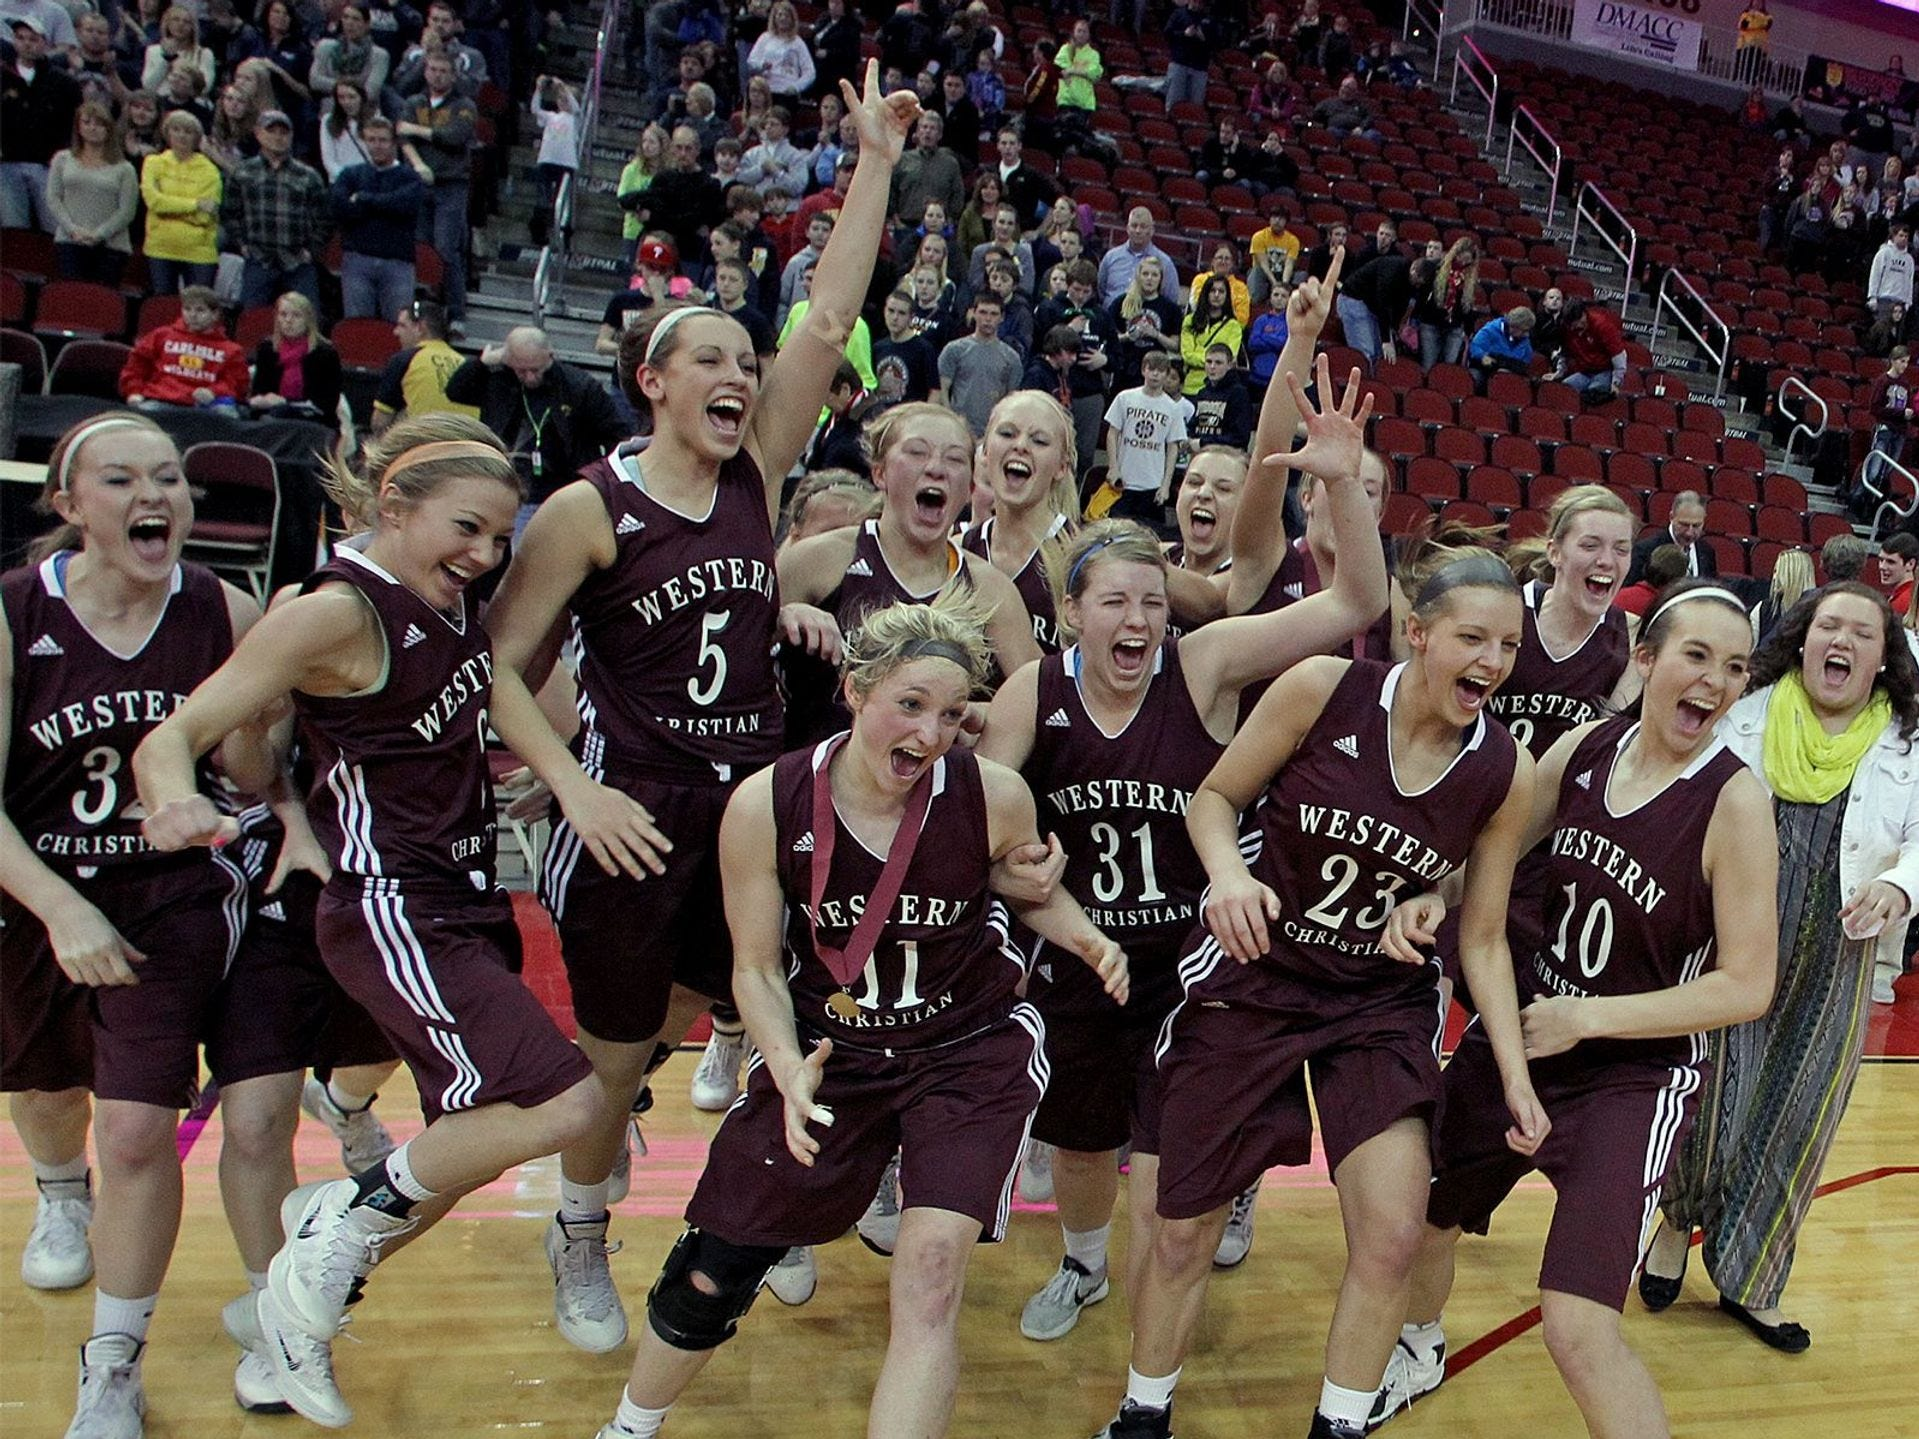 2014: Western Christian (Hull) players charge the trophy after their win over Hudson in the Class 2-A championship final at the state girls' basketball tournament. Register file photo